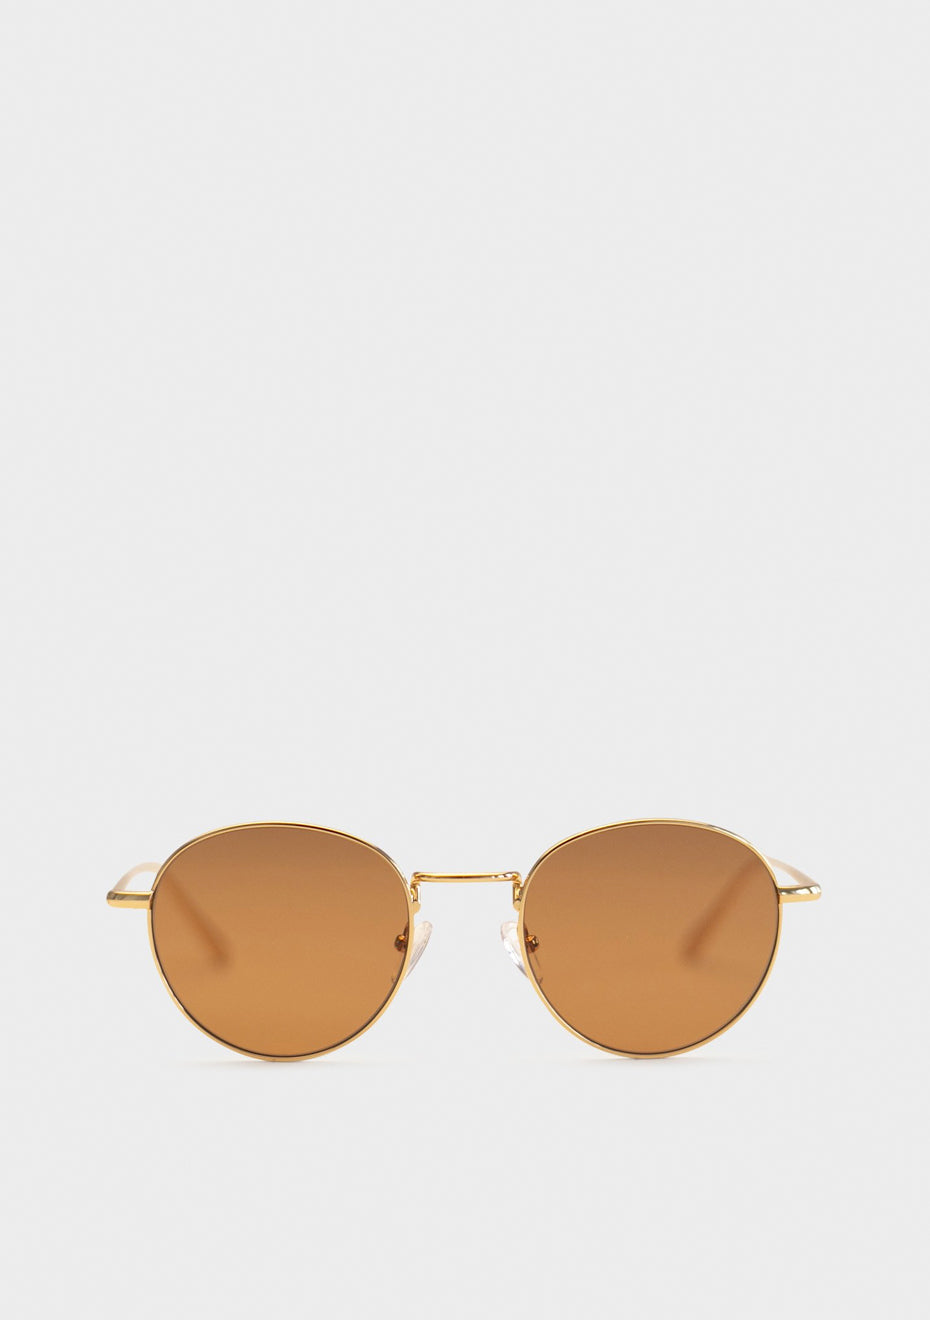 Berg Gold Sunglasses